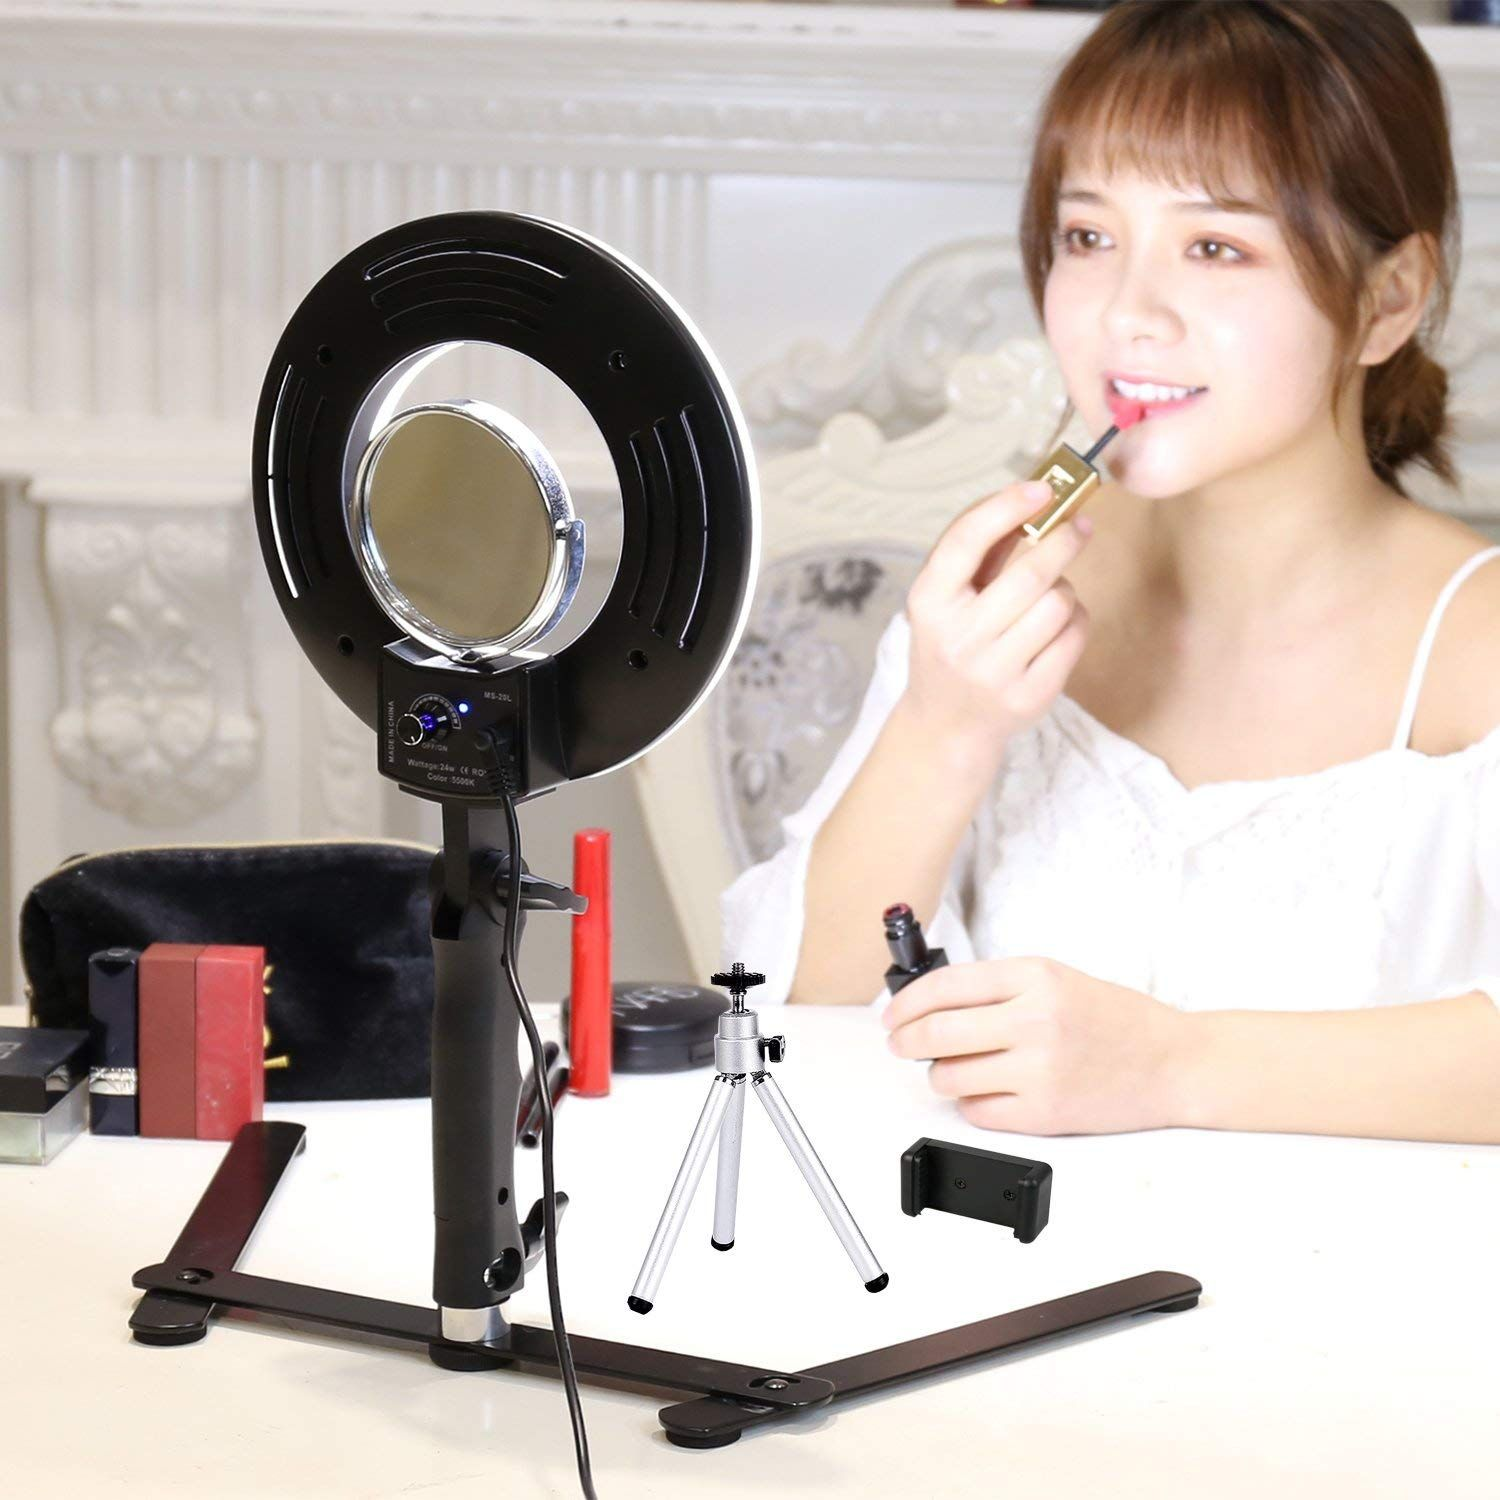 Table Top Led Selfie Ring Light For Makeup 8 Inch Dimmable 24w 5500k O Circular Beauty Lamp With Selfie Ring Light Ring Light For Makeup Led Selfie Ring Light